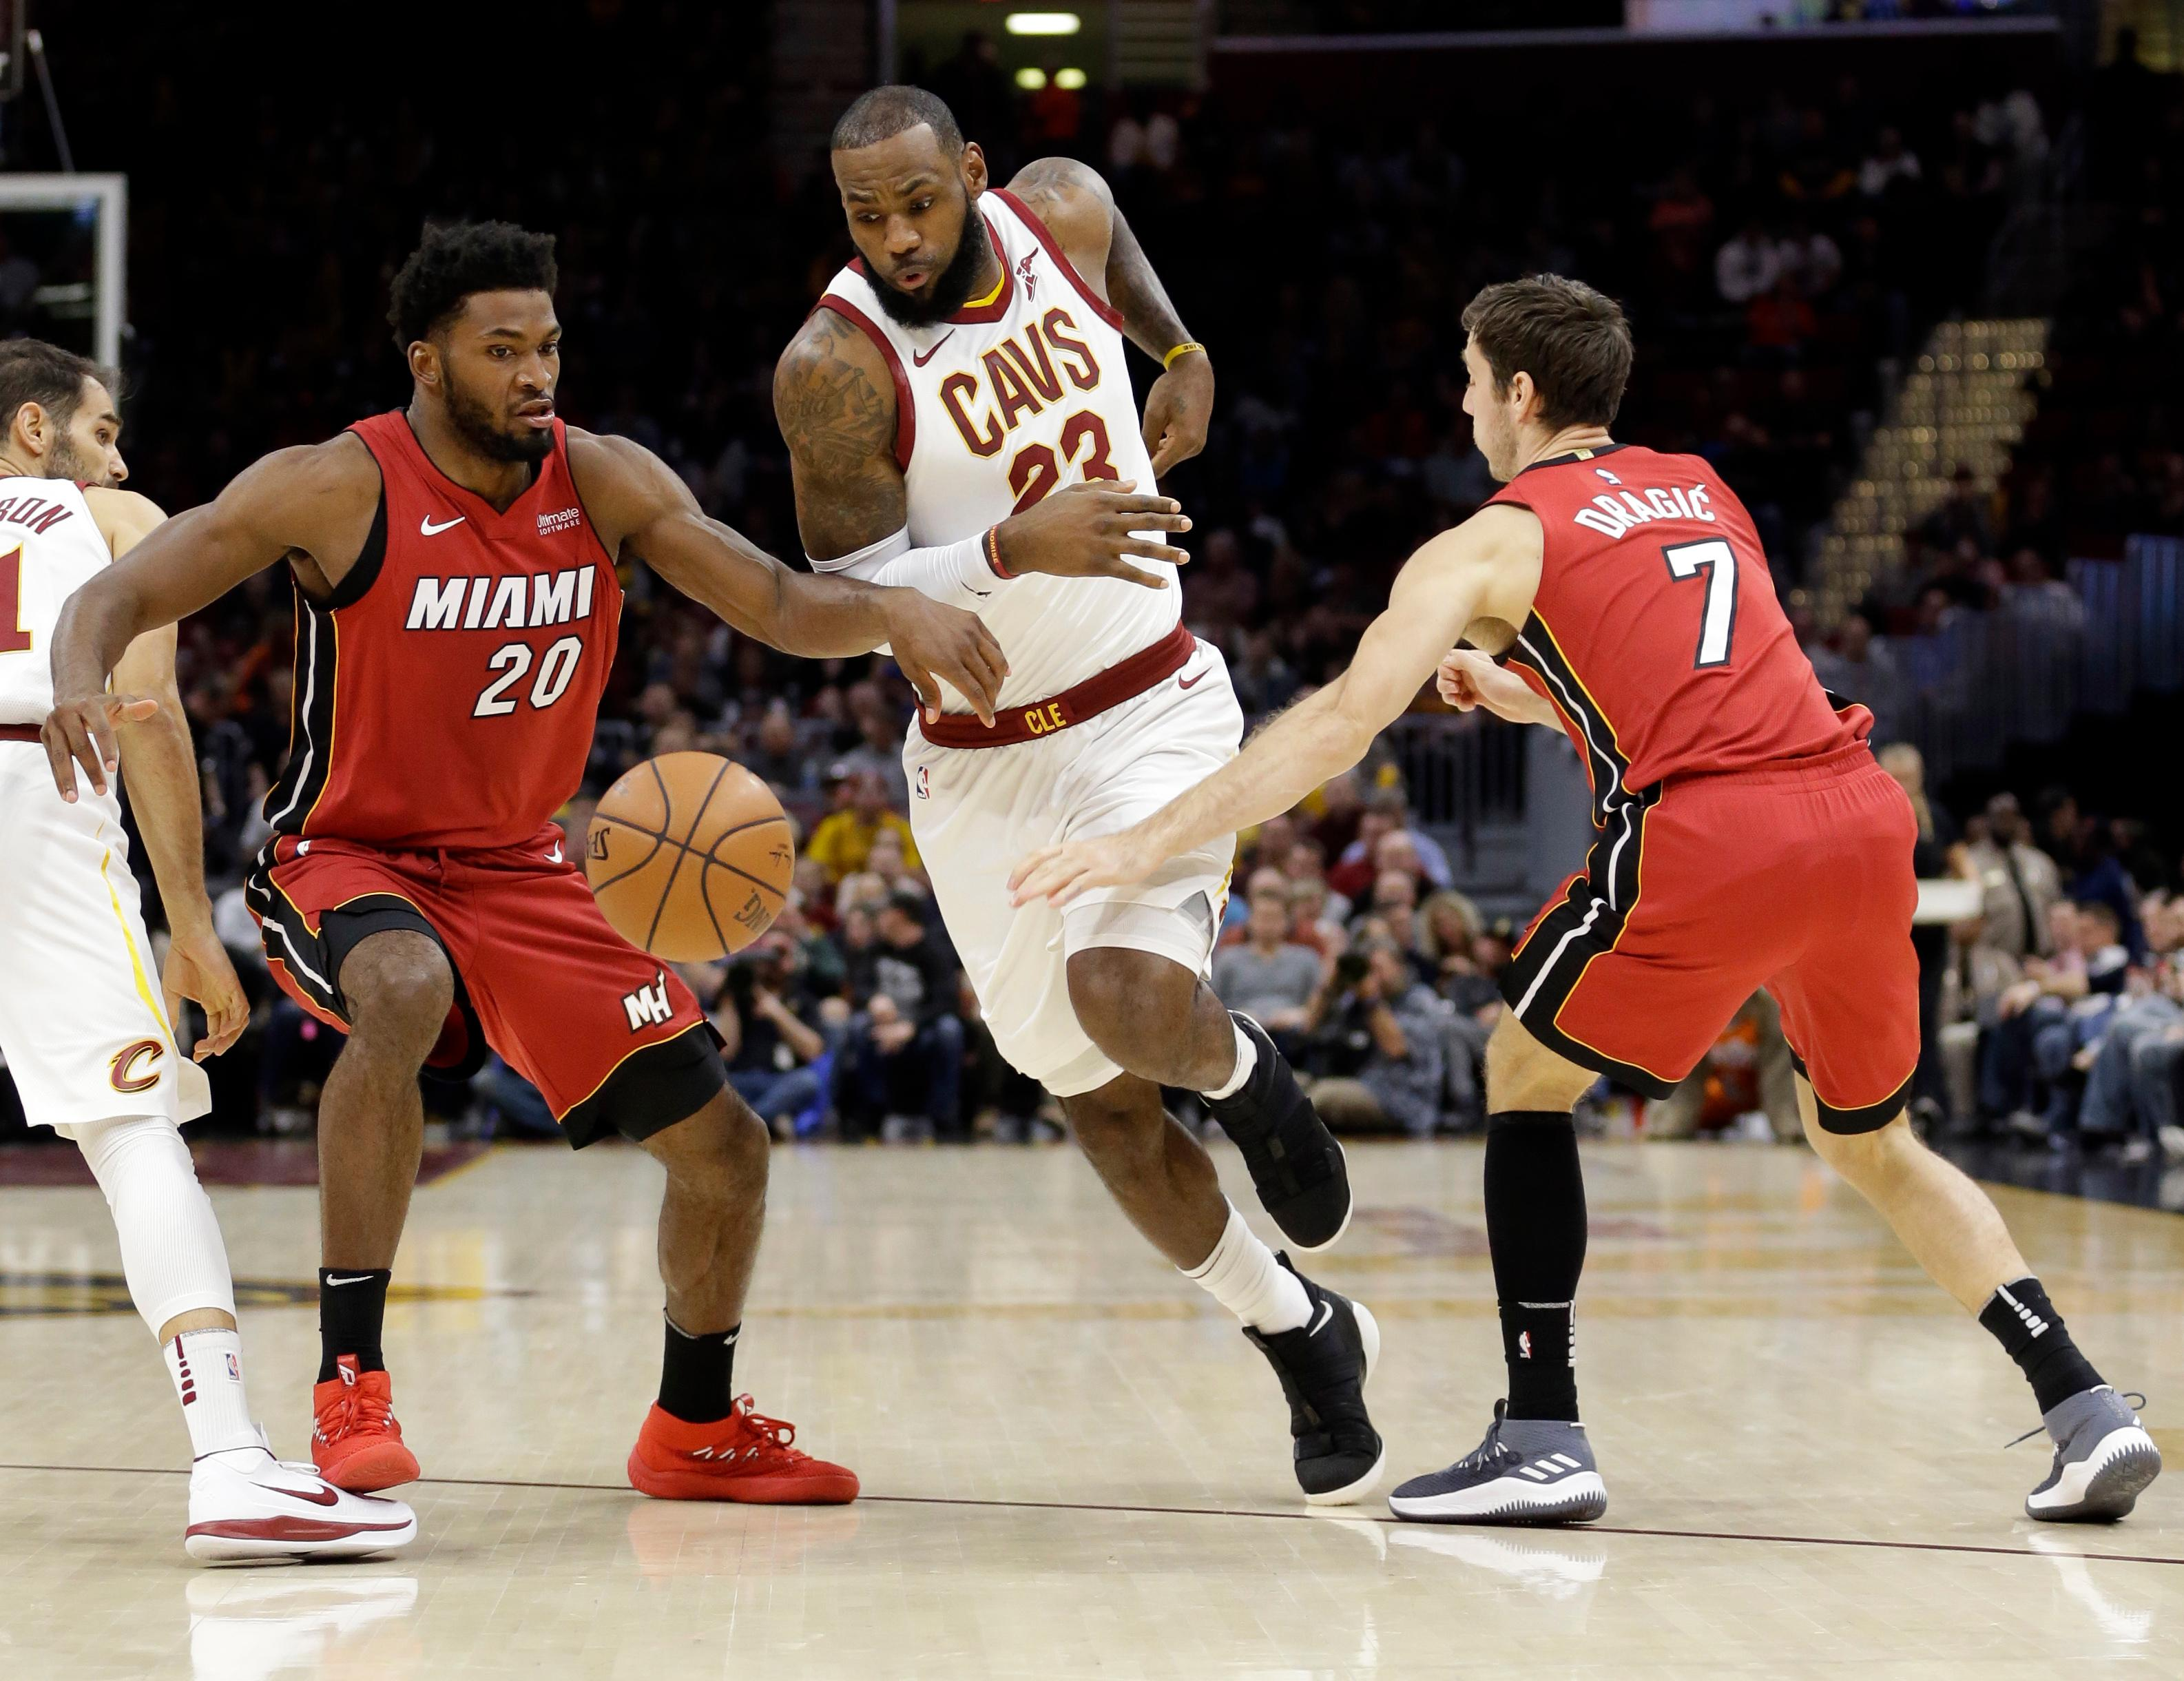 Cleveland Cavaliers' LeBron James (23) drives between Miami Heat's Justise Winslow (20) and Goran Dragic, from Slovenia, in the first half of an NBA basketball game, Tuesday, Nov. 28, 2017, in Cleveland. (AP Photo/Tony Dejak)